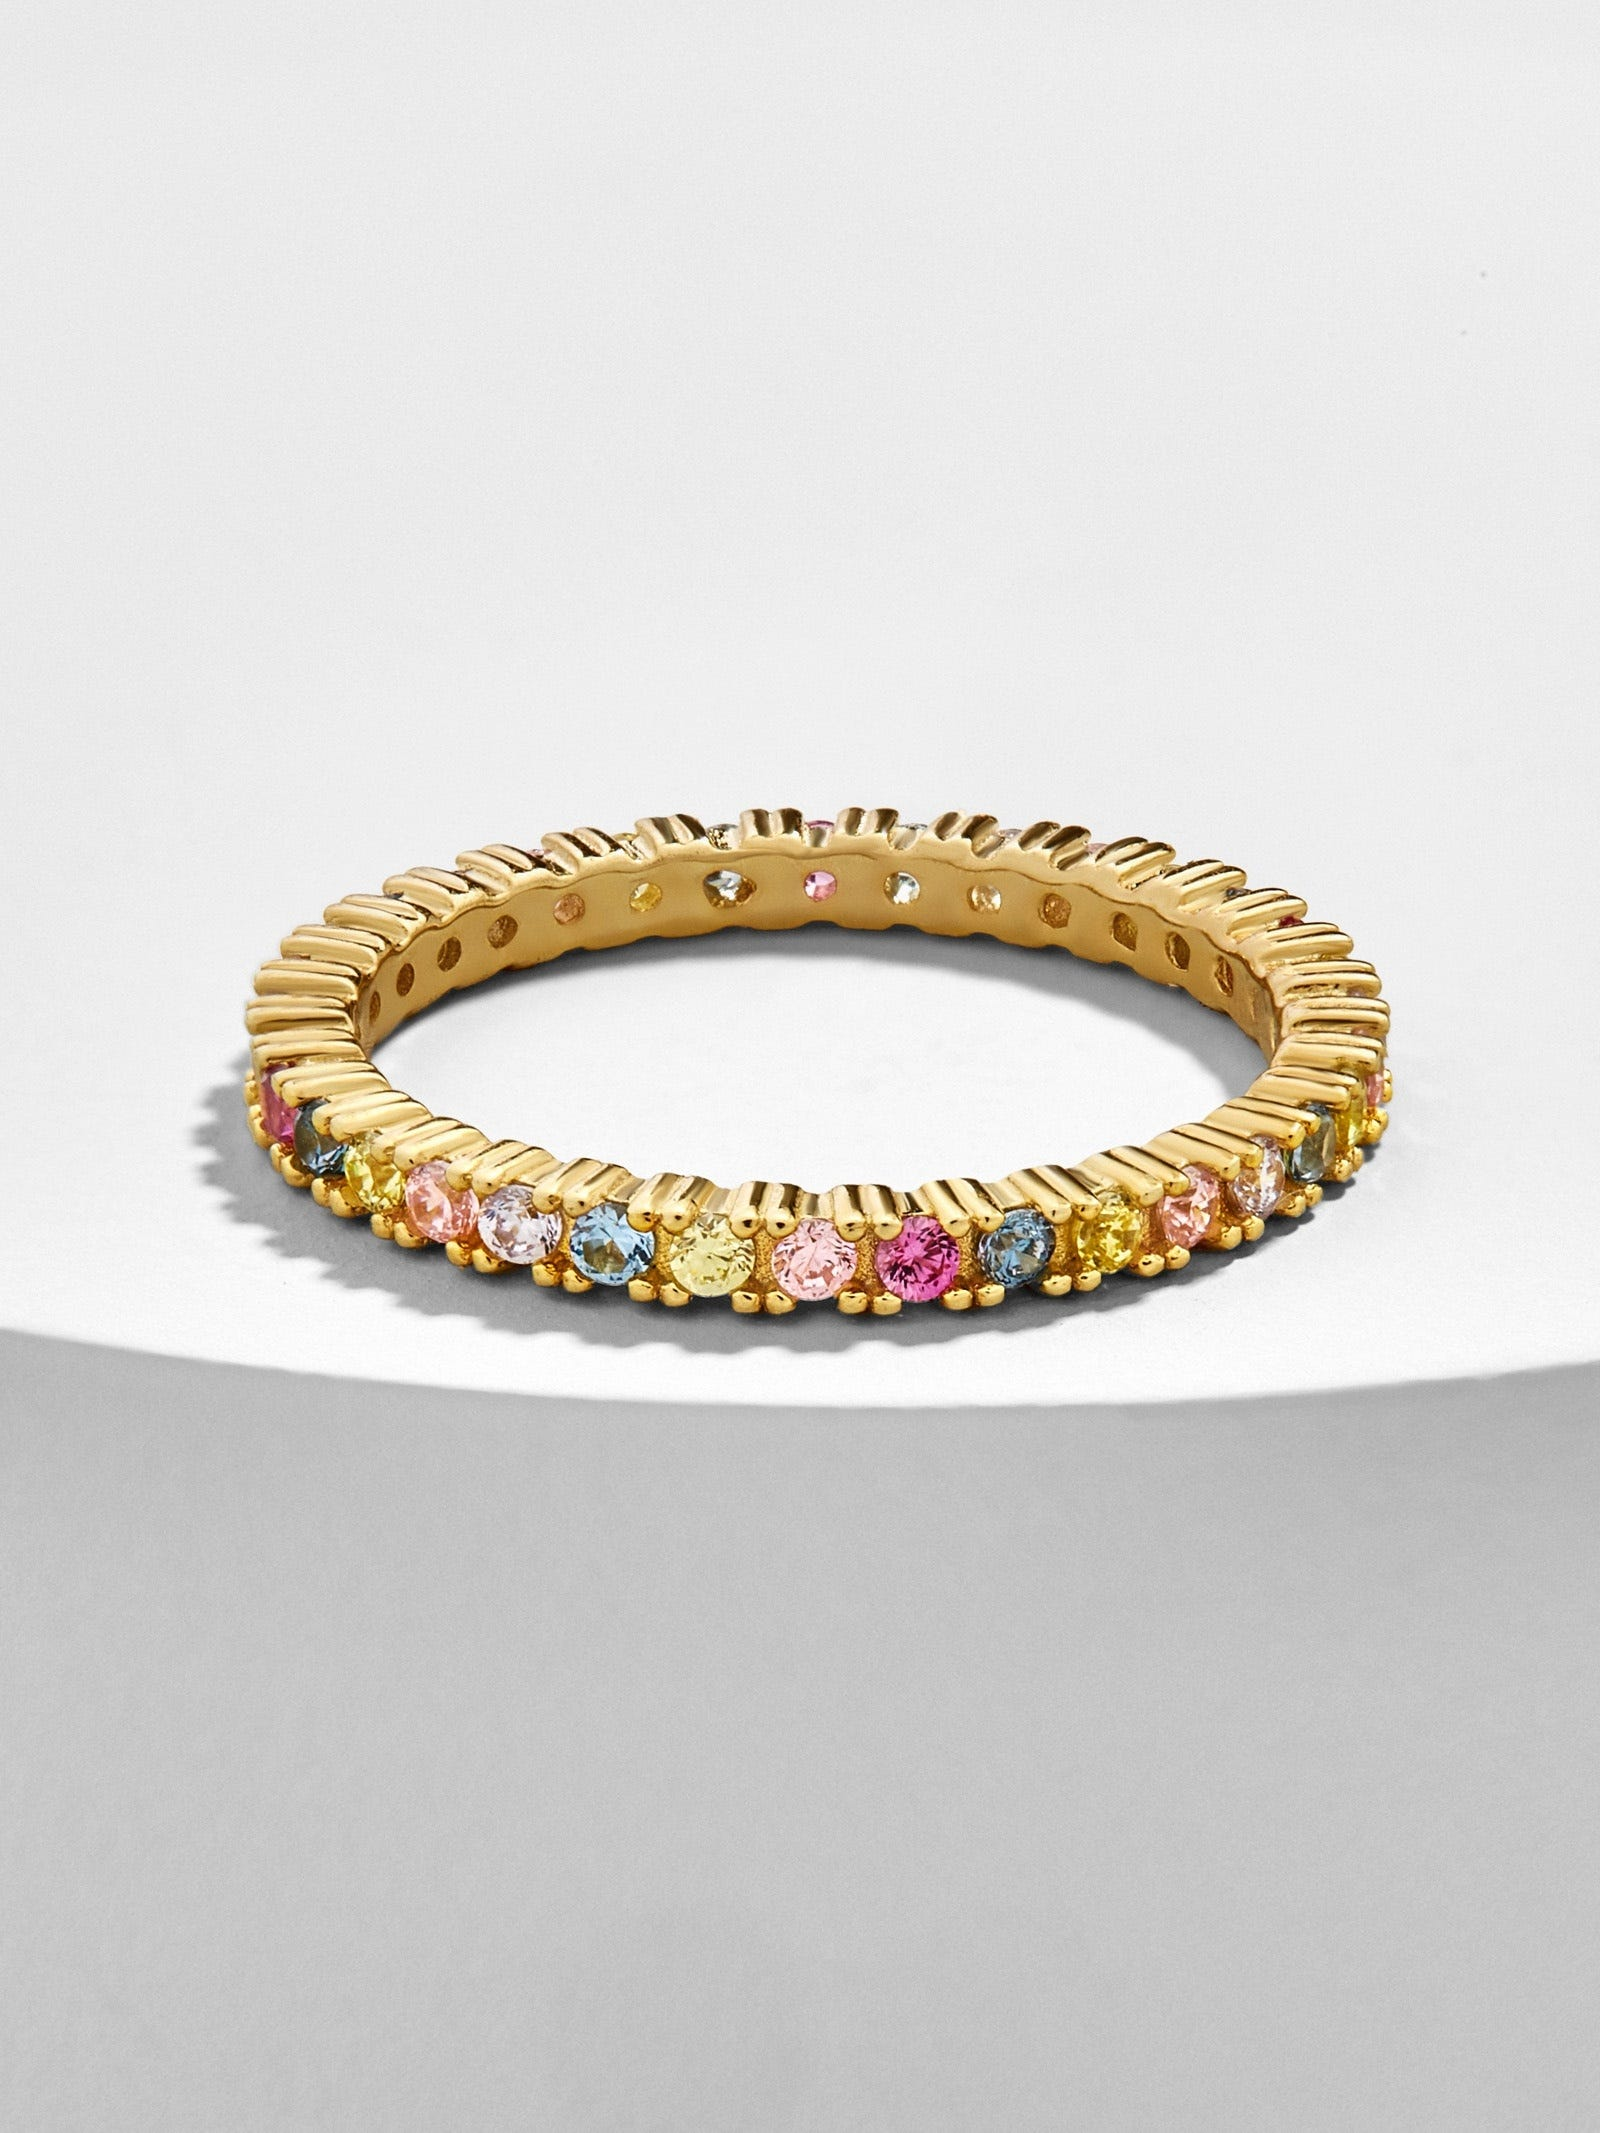 R29 Readers' Favorite Sold-Out Ring Is Back With A Crowd